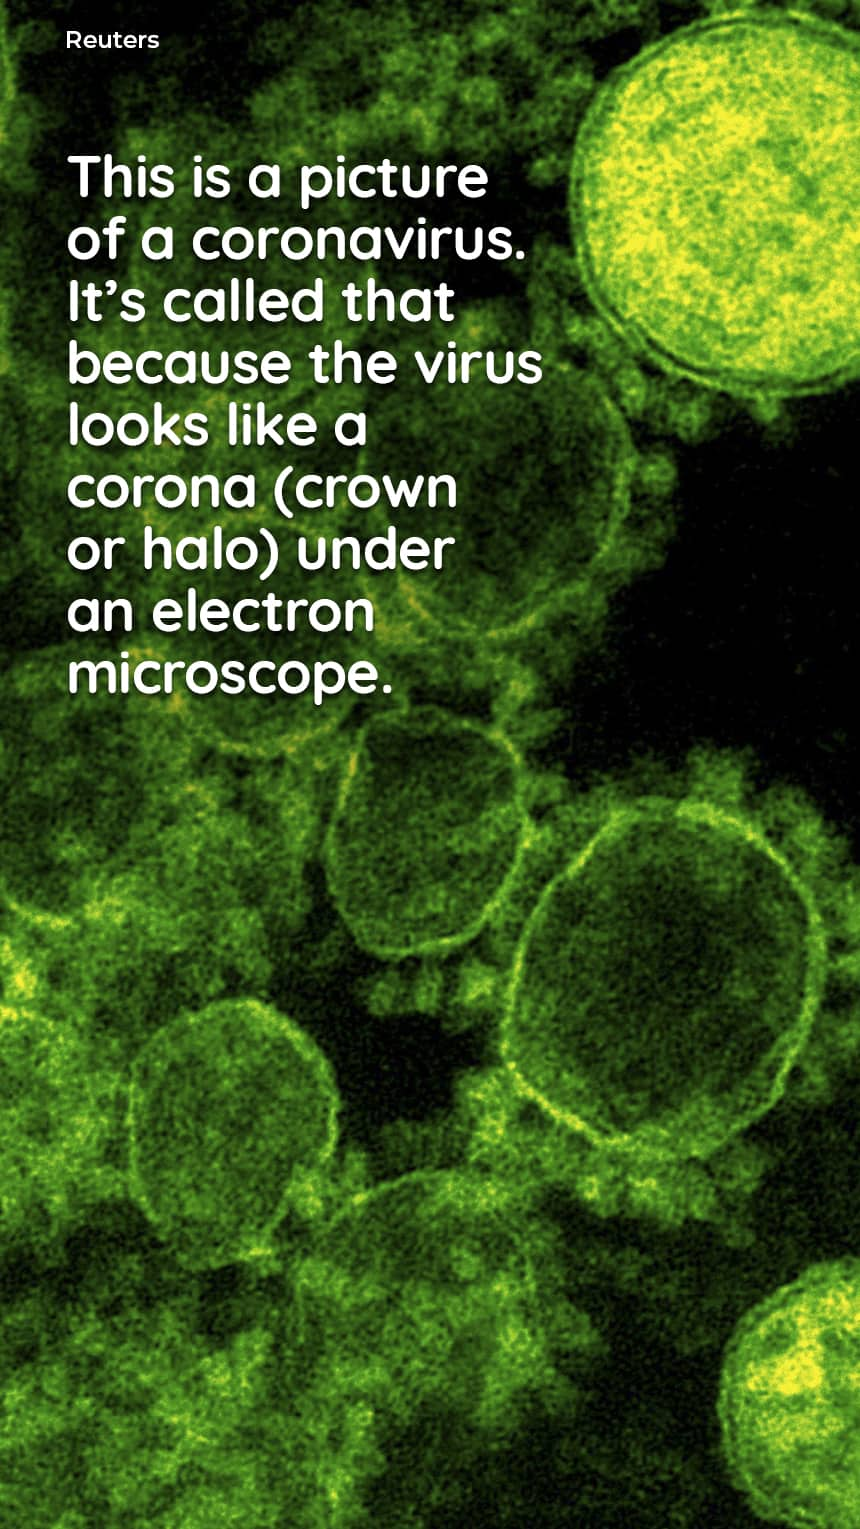 TEXT: This is a picture of a coronavirus. It's called that because the virus looks like a corona (crown or halo) under an electron microscope. IMAGE: Thin green circles. CREDIT: Reuters